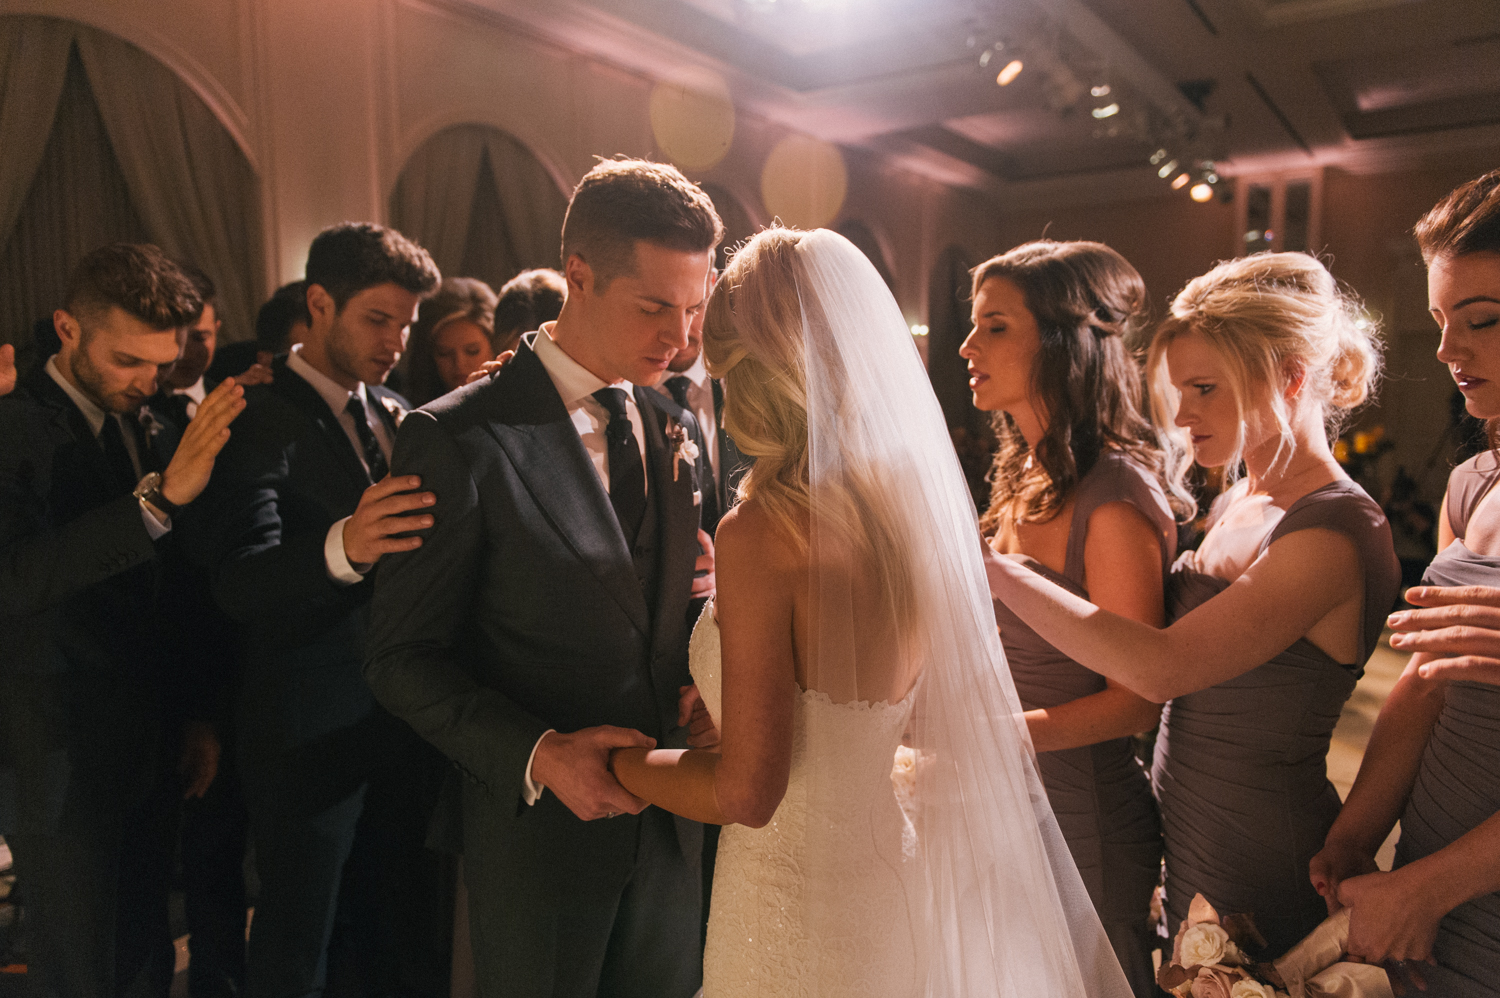 JasonKennedy.LaurenScruggs.DallasWedding4.jpg